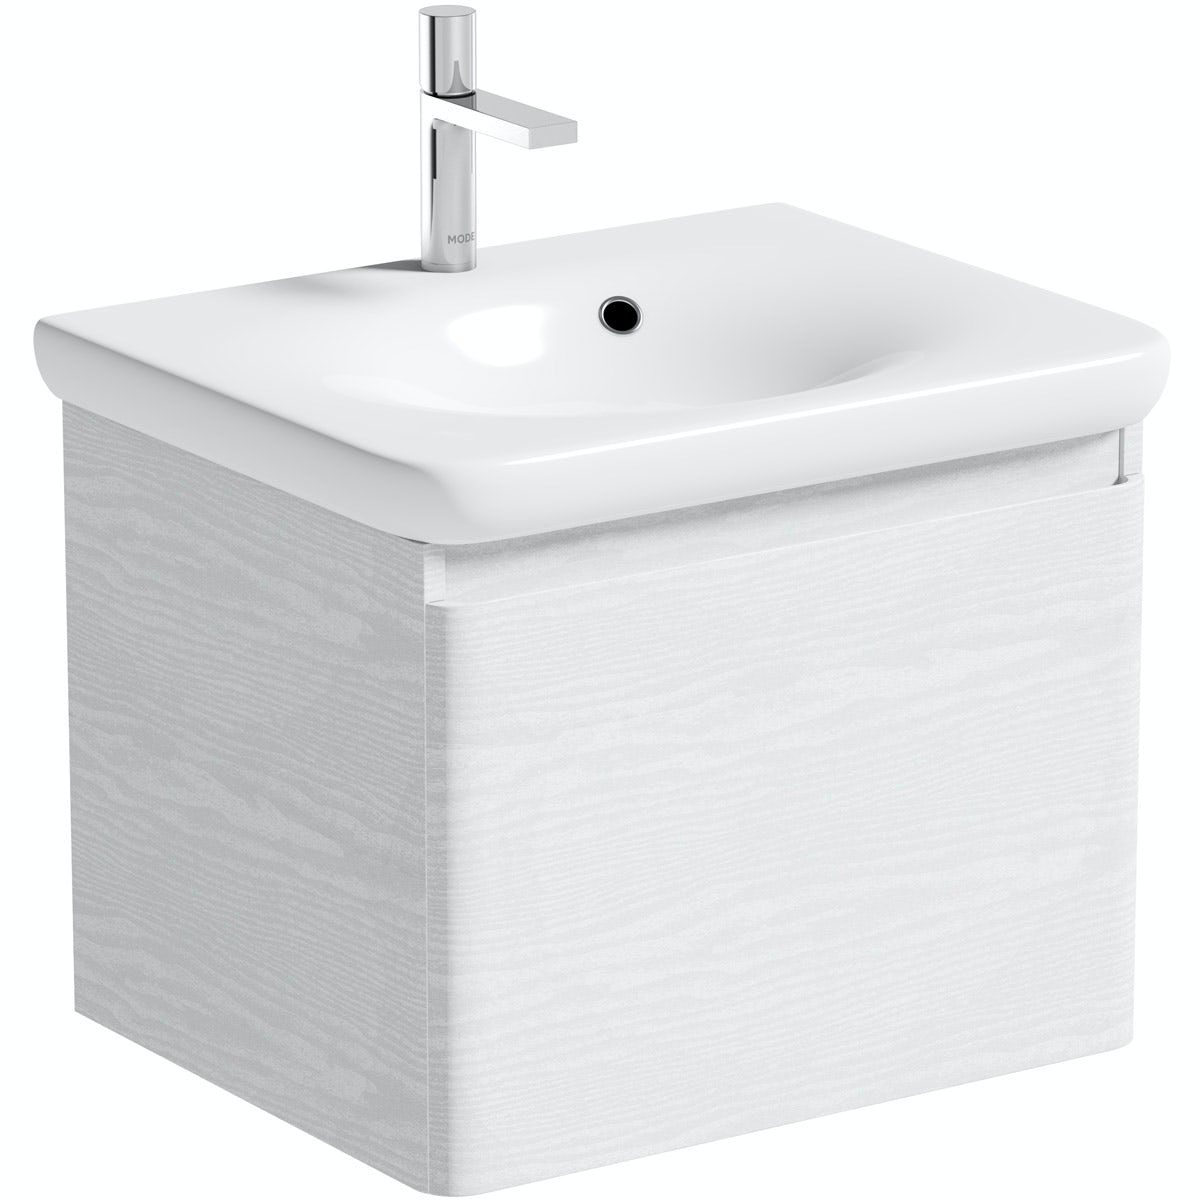 Mode Heath LED white wall hung vanity unit and basin 600mm